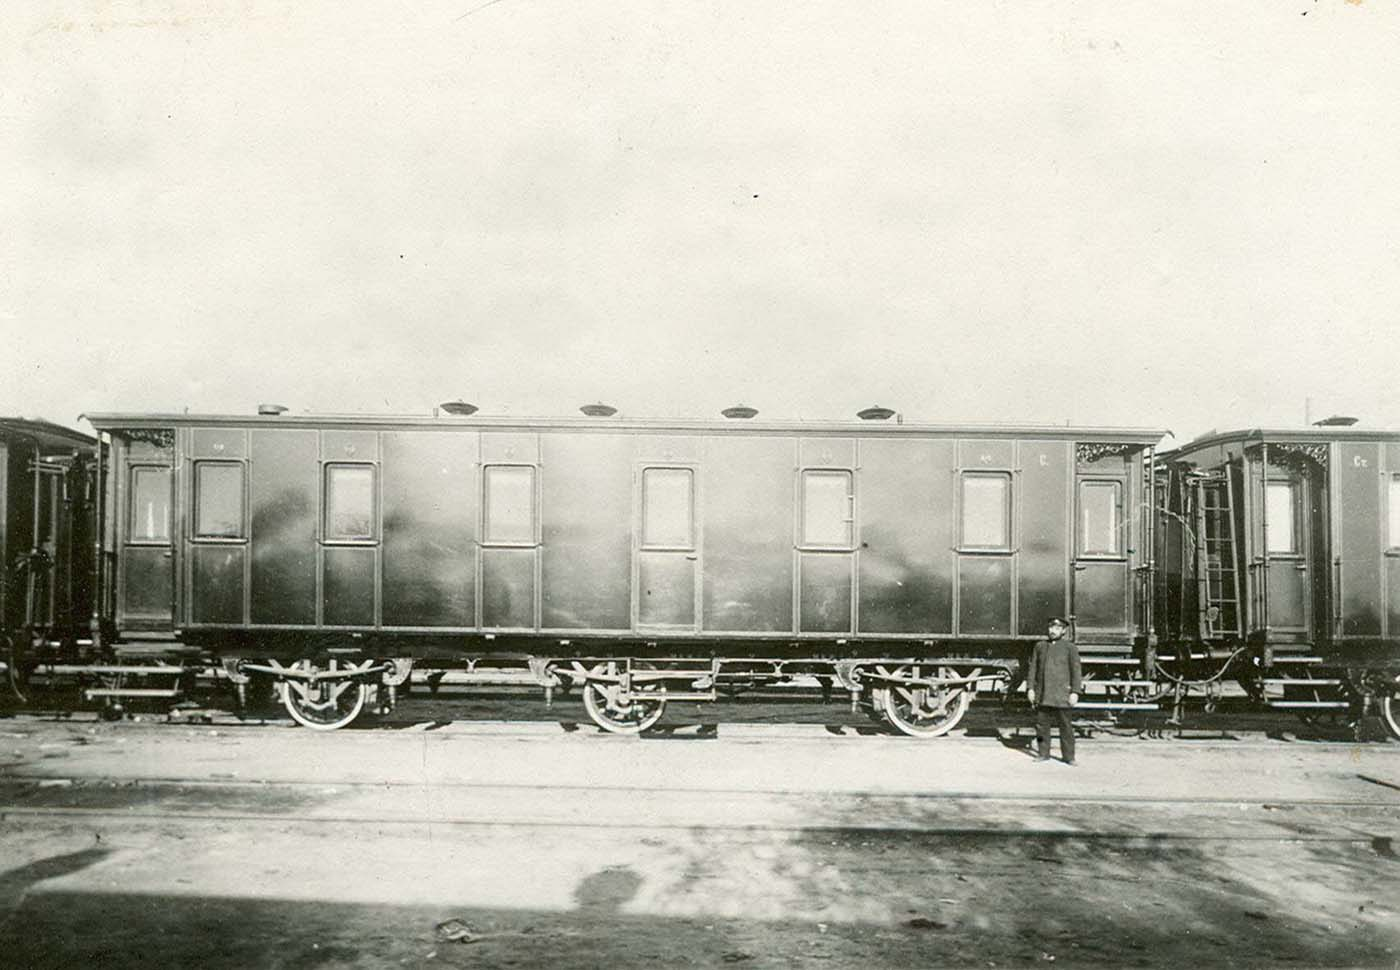 The train was built between 1894-96 in the main Car Workshops of the Nikolaevsky Railway Company.